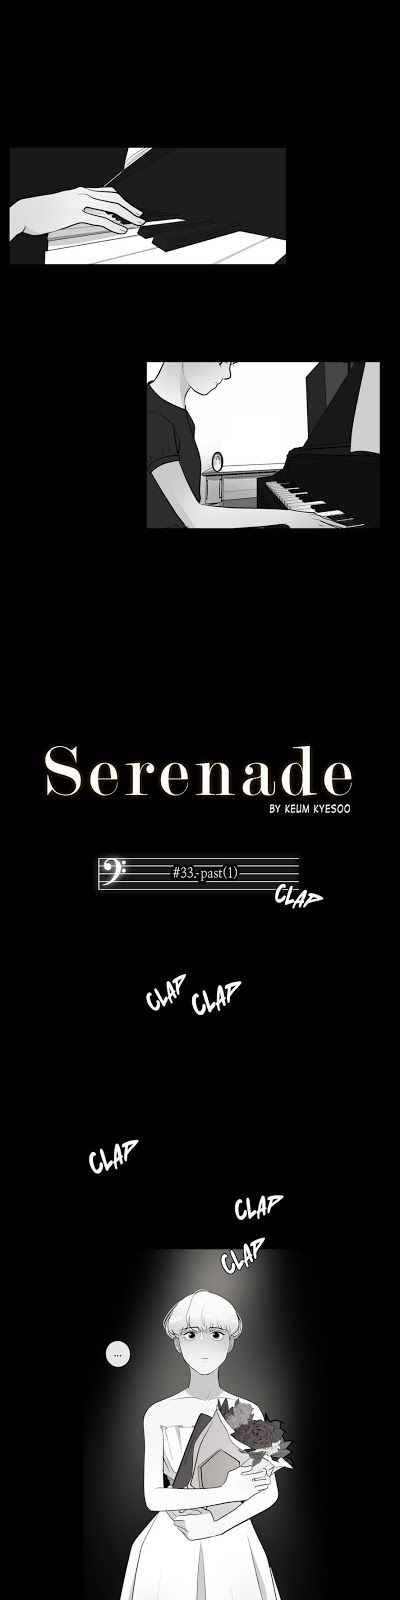 Serenade (keum Kyesoo) - Chapter 32